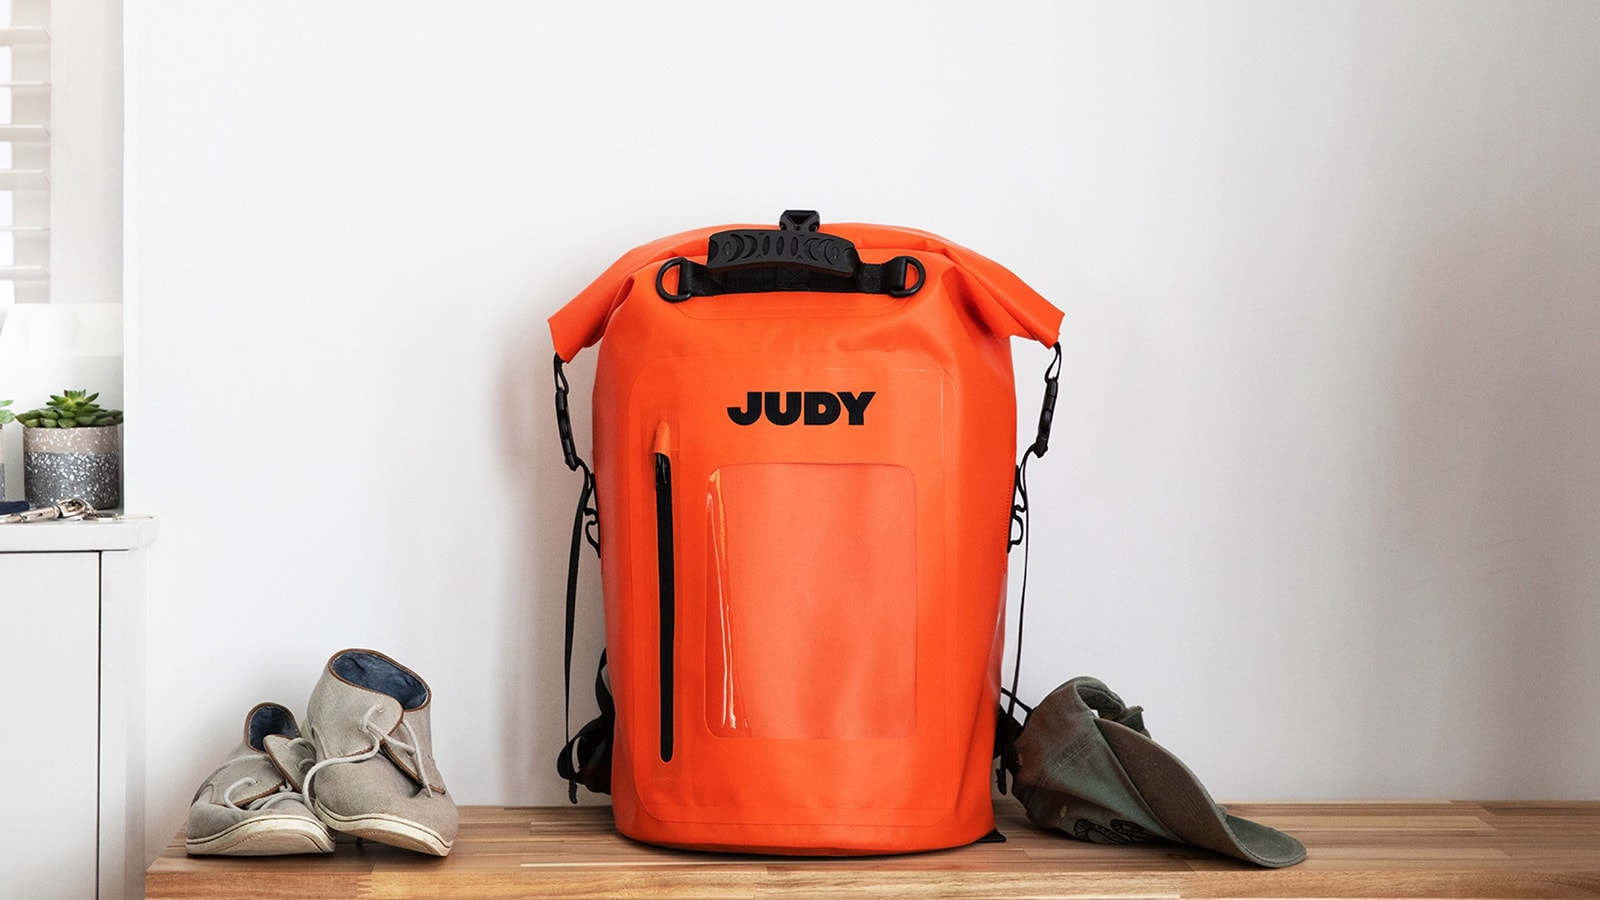 Judy The Mover Max evacuation-ready kit can support a family of 4 for up to 72 hours